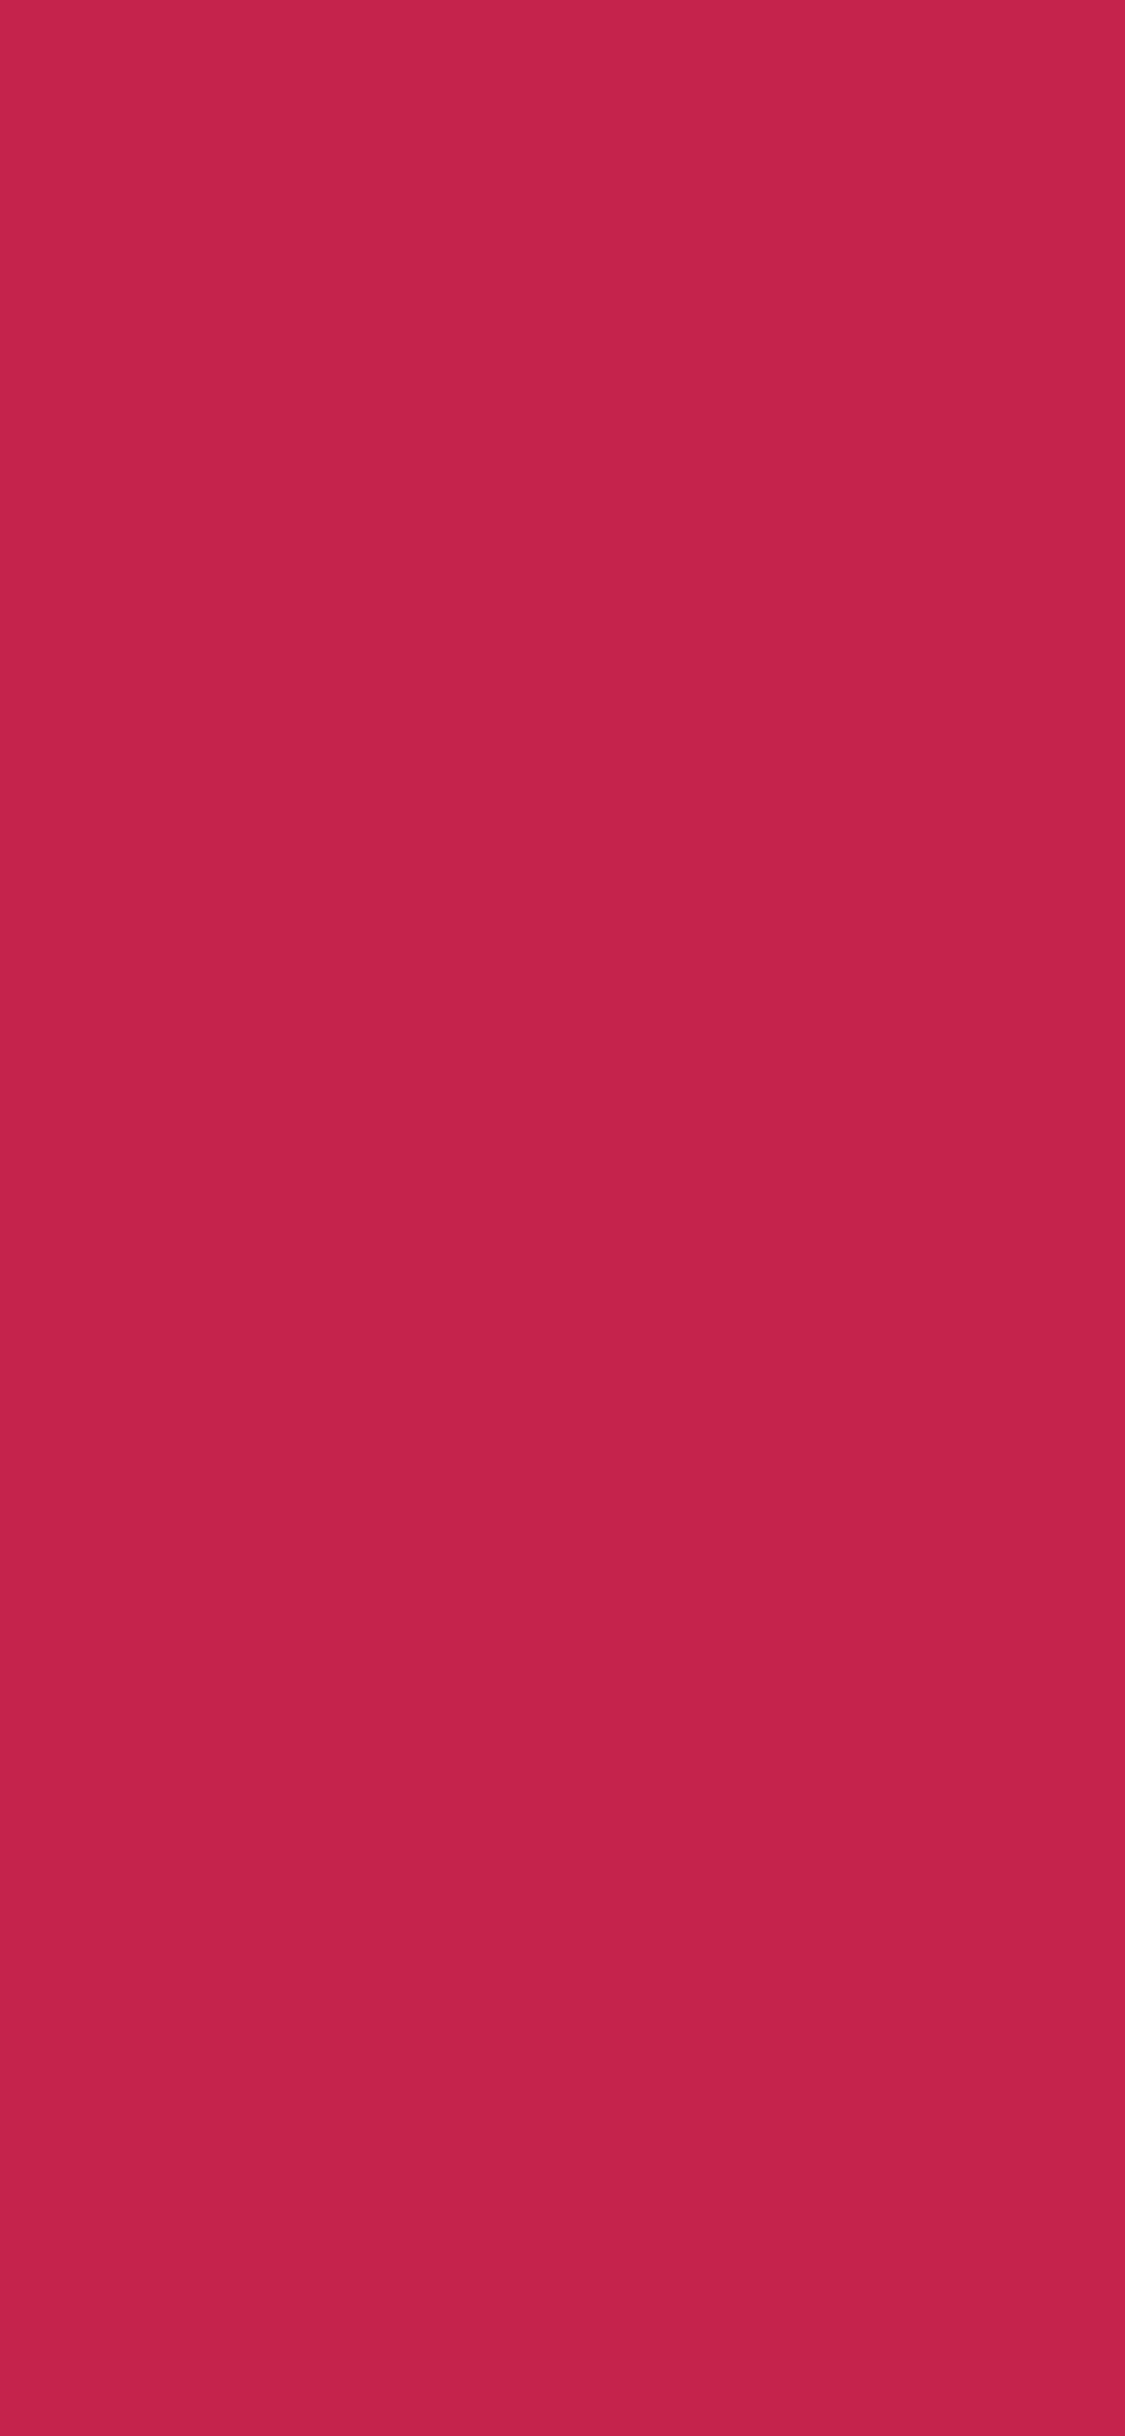 1125x2436 Bright Maroon Solid Color Background